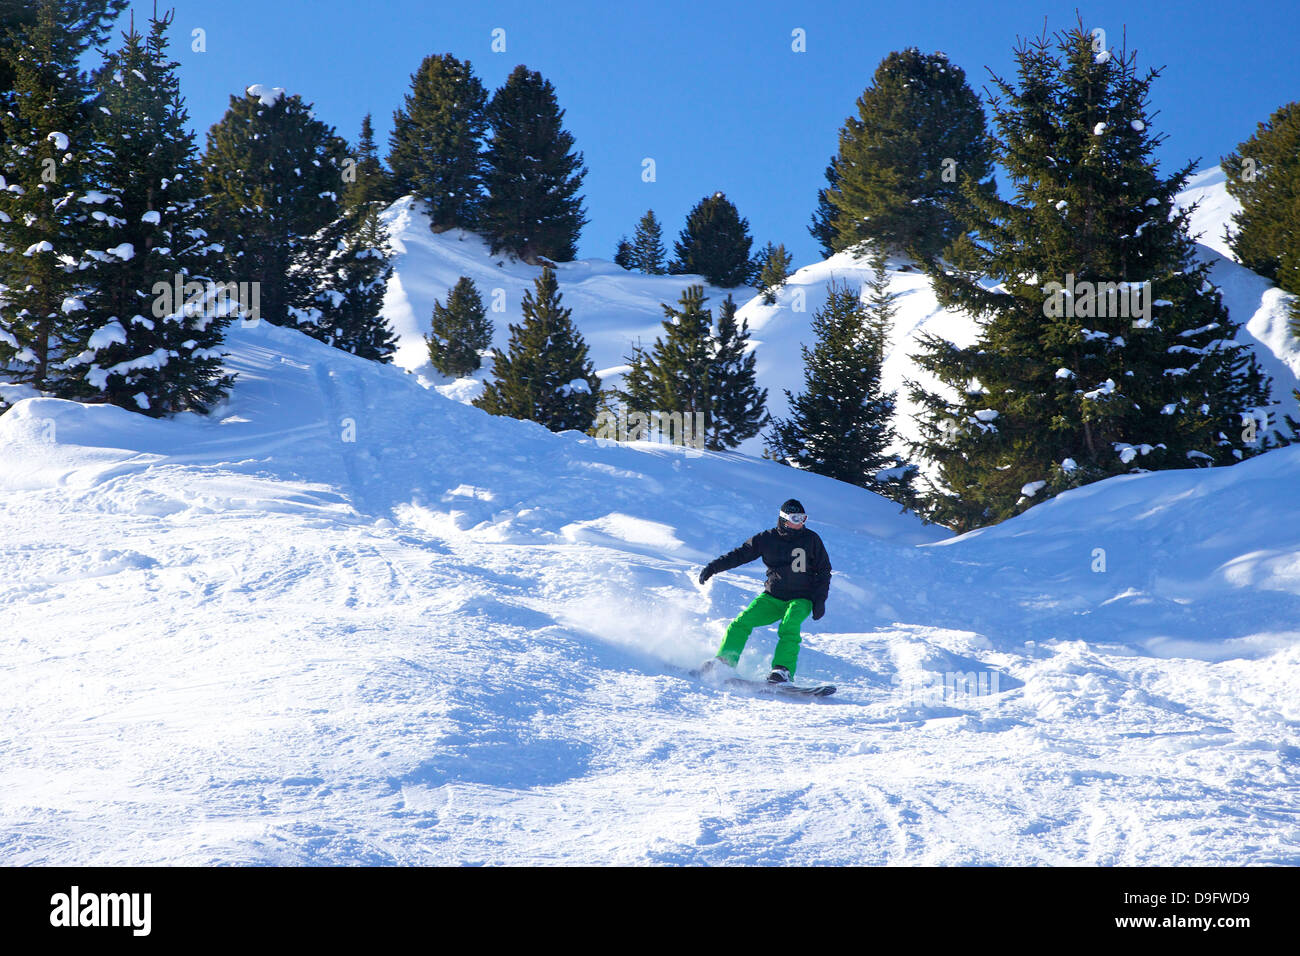 Snow-boarding off-piste early morning in winter, La Plagne, French Alps, France - Stock Image